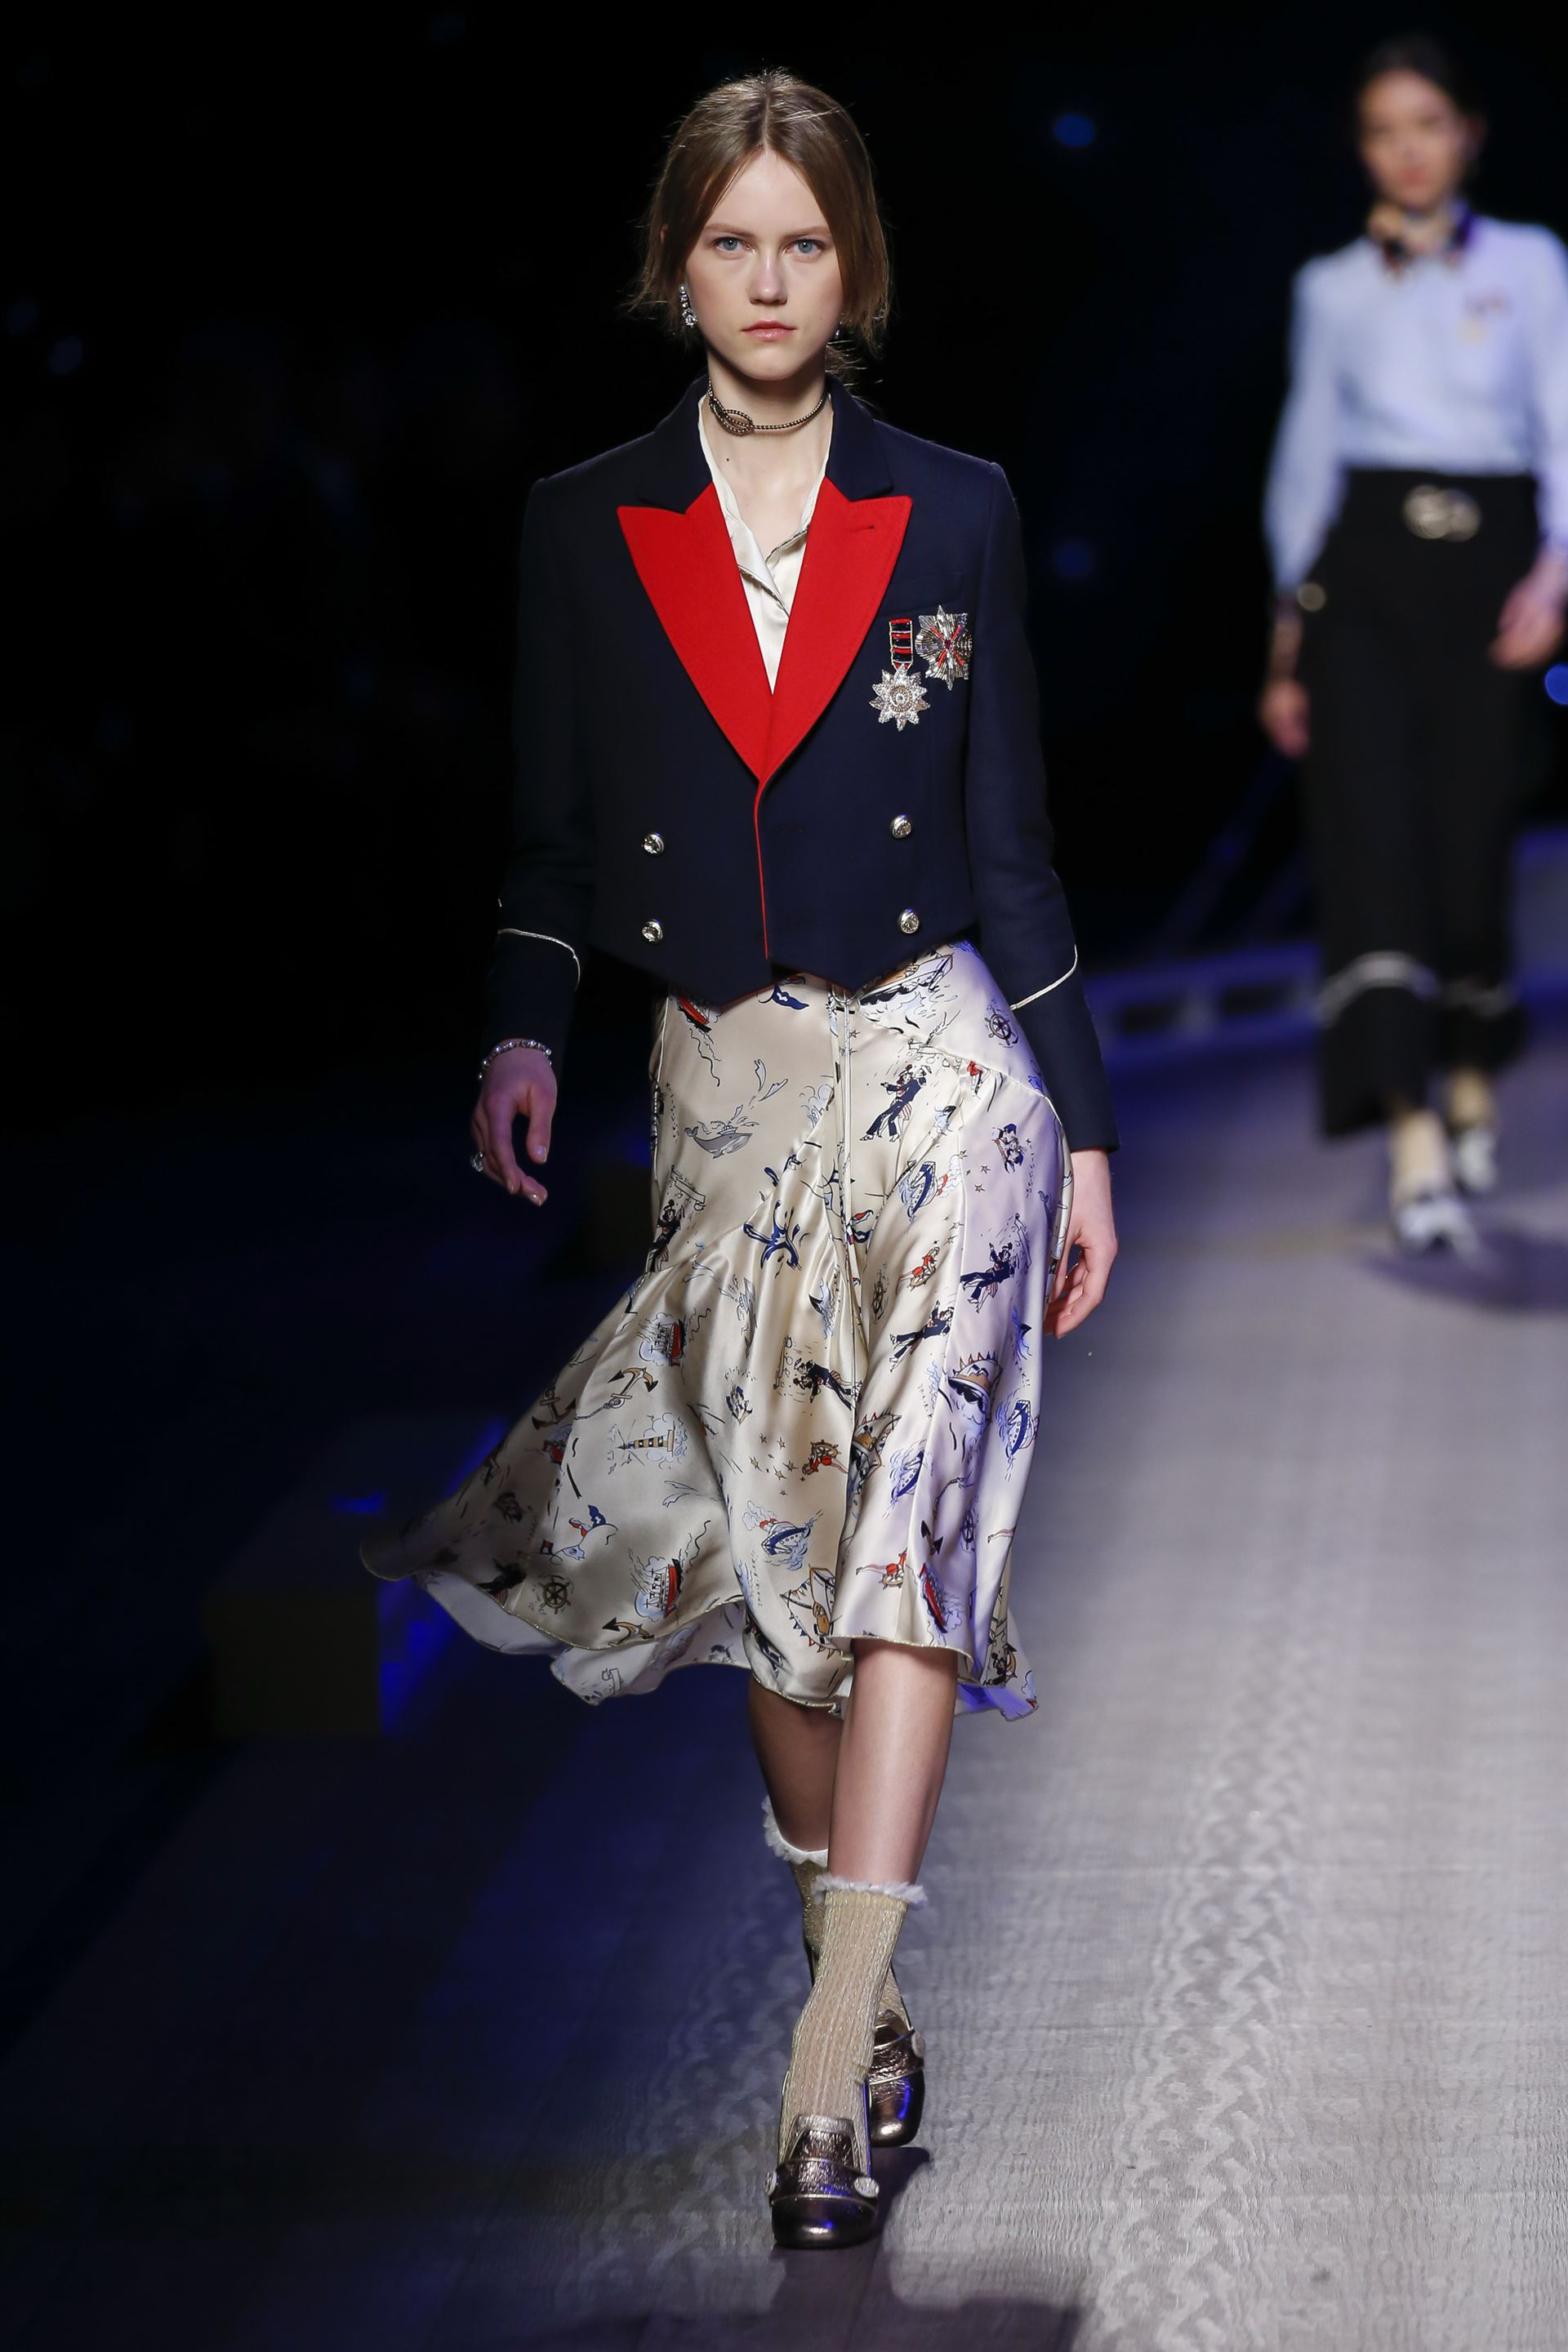 gallerysense.com TOMMY HILFIGER NY FASHION 2016